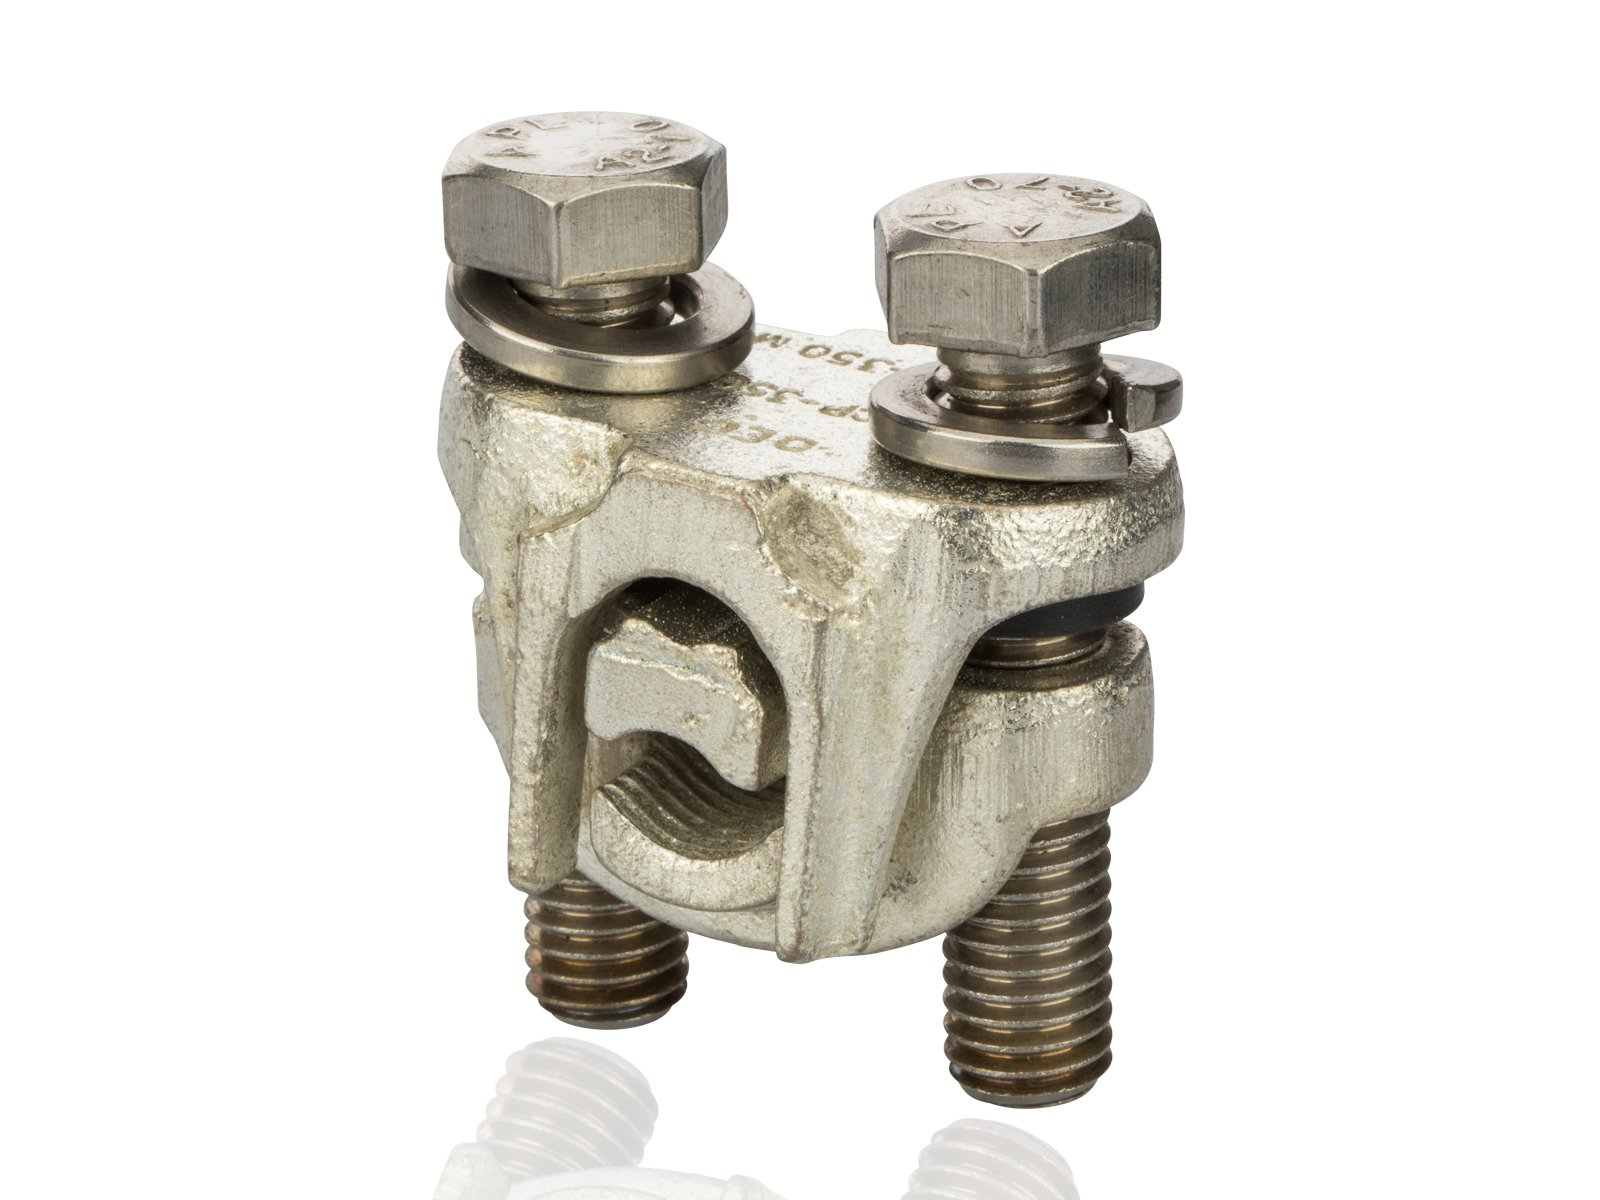 Tap Connector - Tap Connector - Two-Bolt Bronze-Plated for Aluminum, Copper and Steel, 350MCM-4/0 str Main Wire Range, 350 MCM-4 sol Tap Wire Range